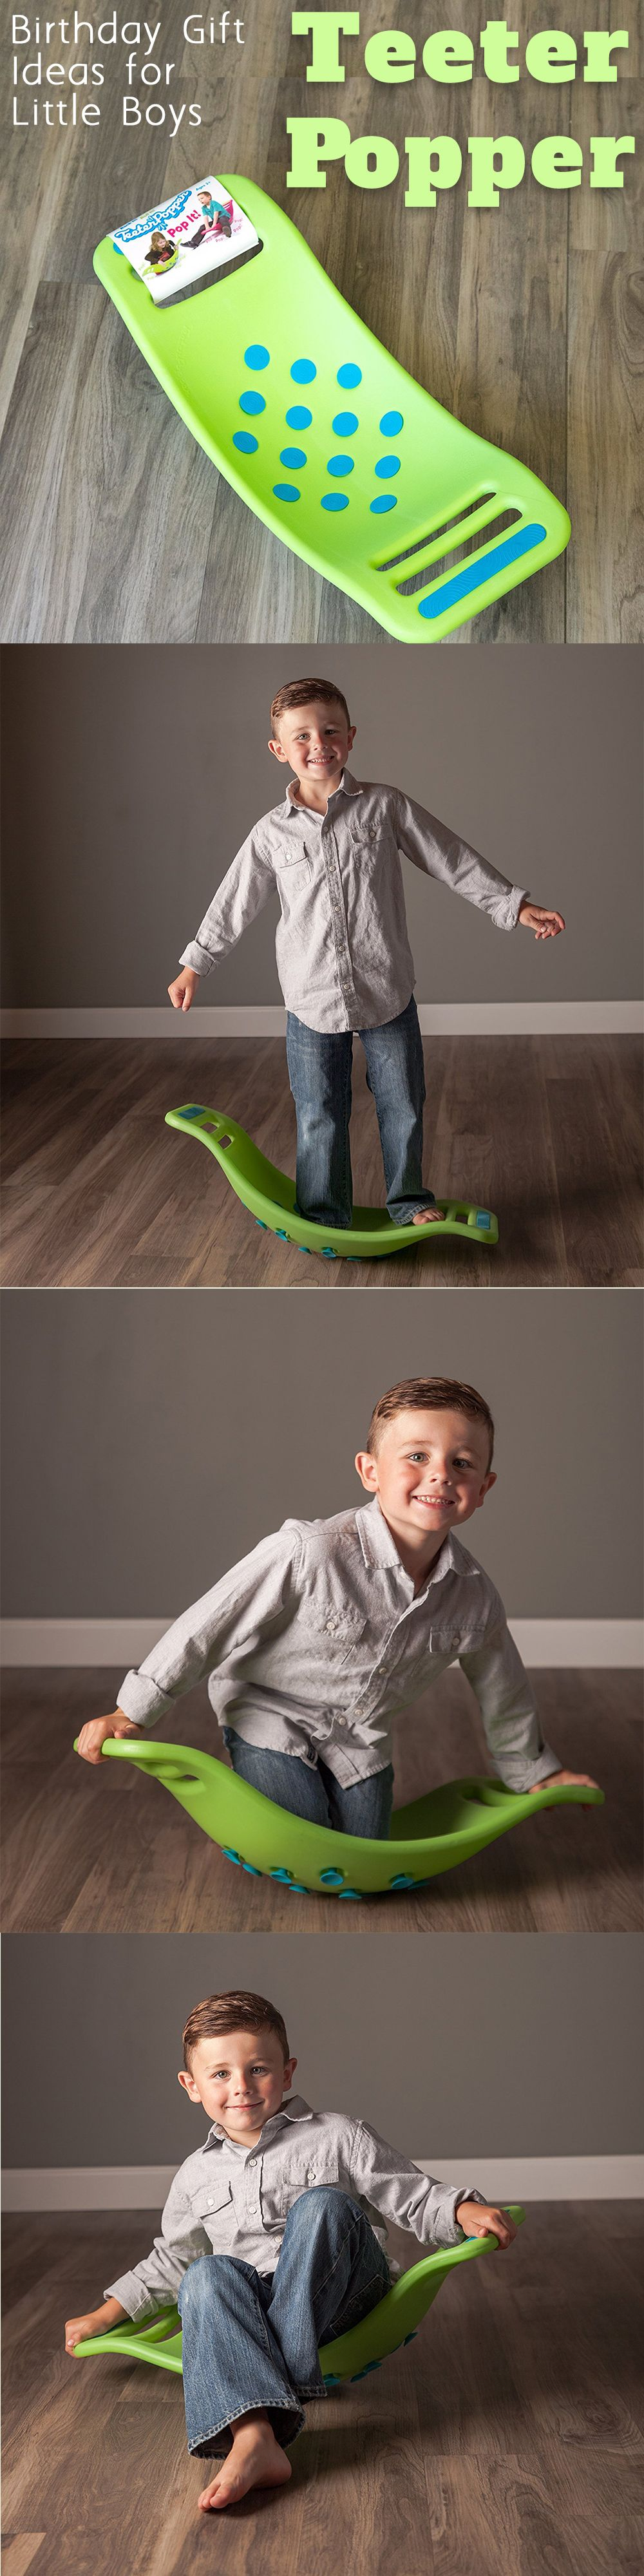 21 absolutely great birthday gift ideas for little boys